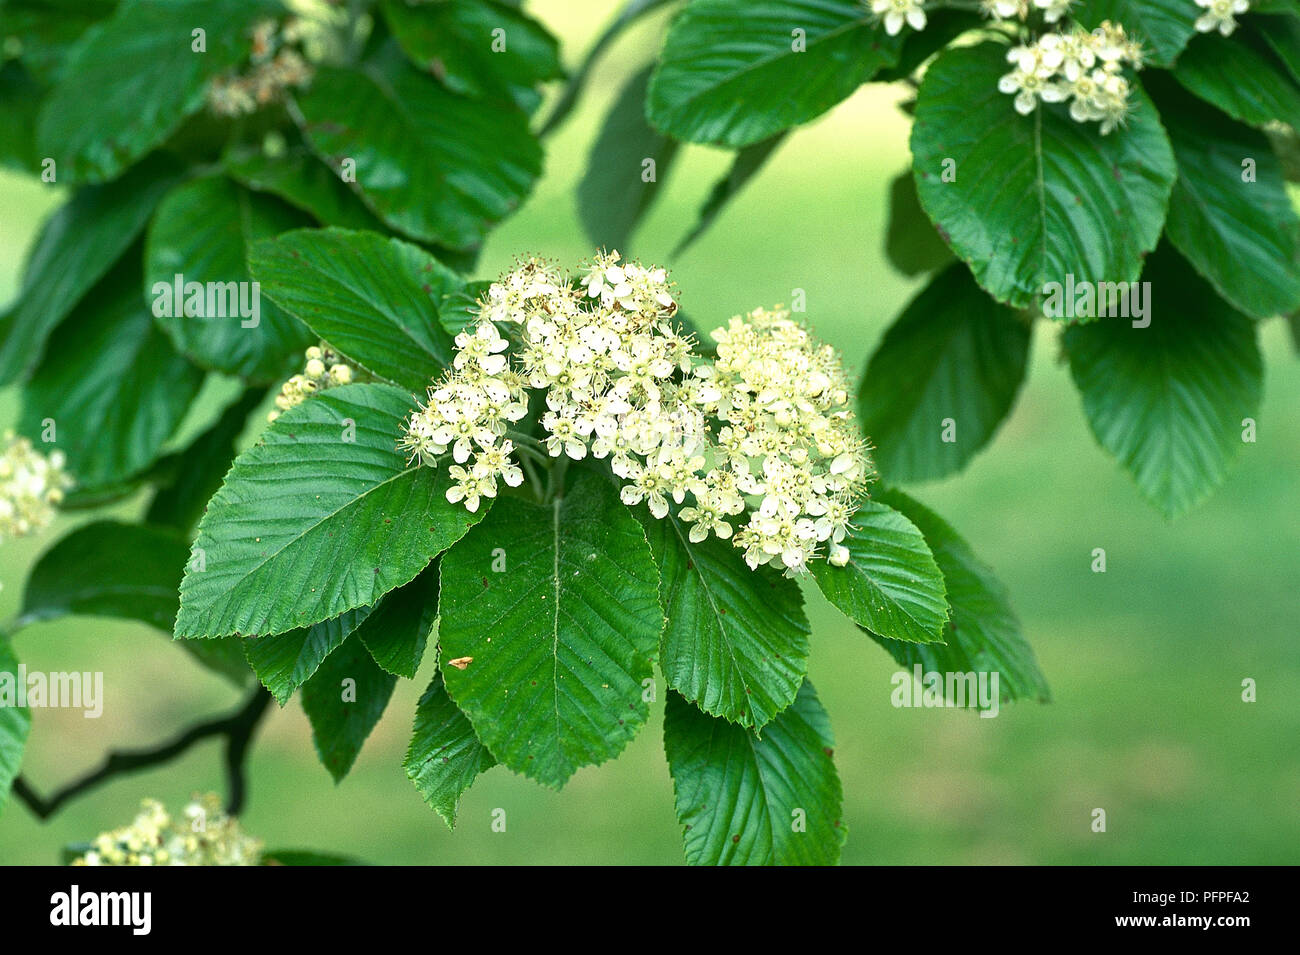 Sorbus Aria Whitebeam With Glossy Green Leaves With Clusters Of